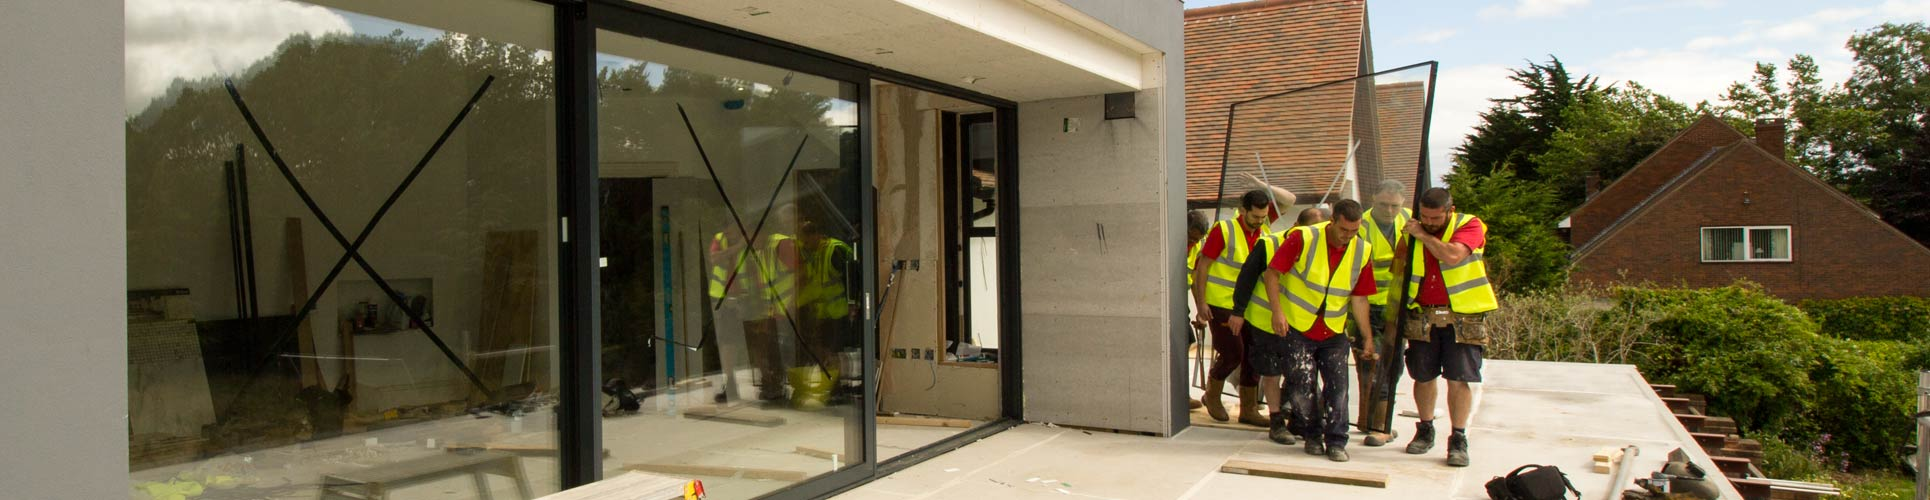 Black 9m Dutemann sliding door installation in Caldy, Wirral.